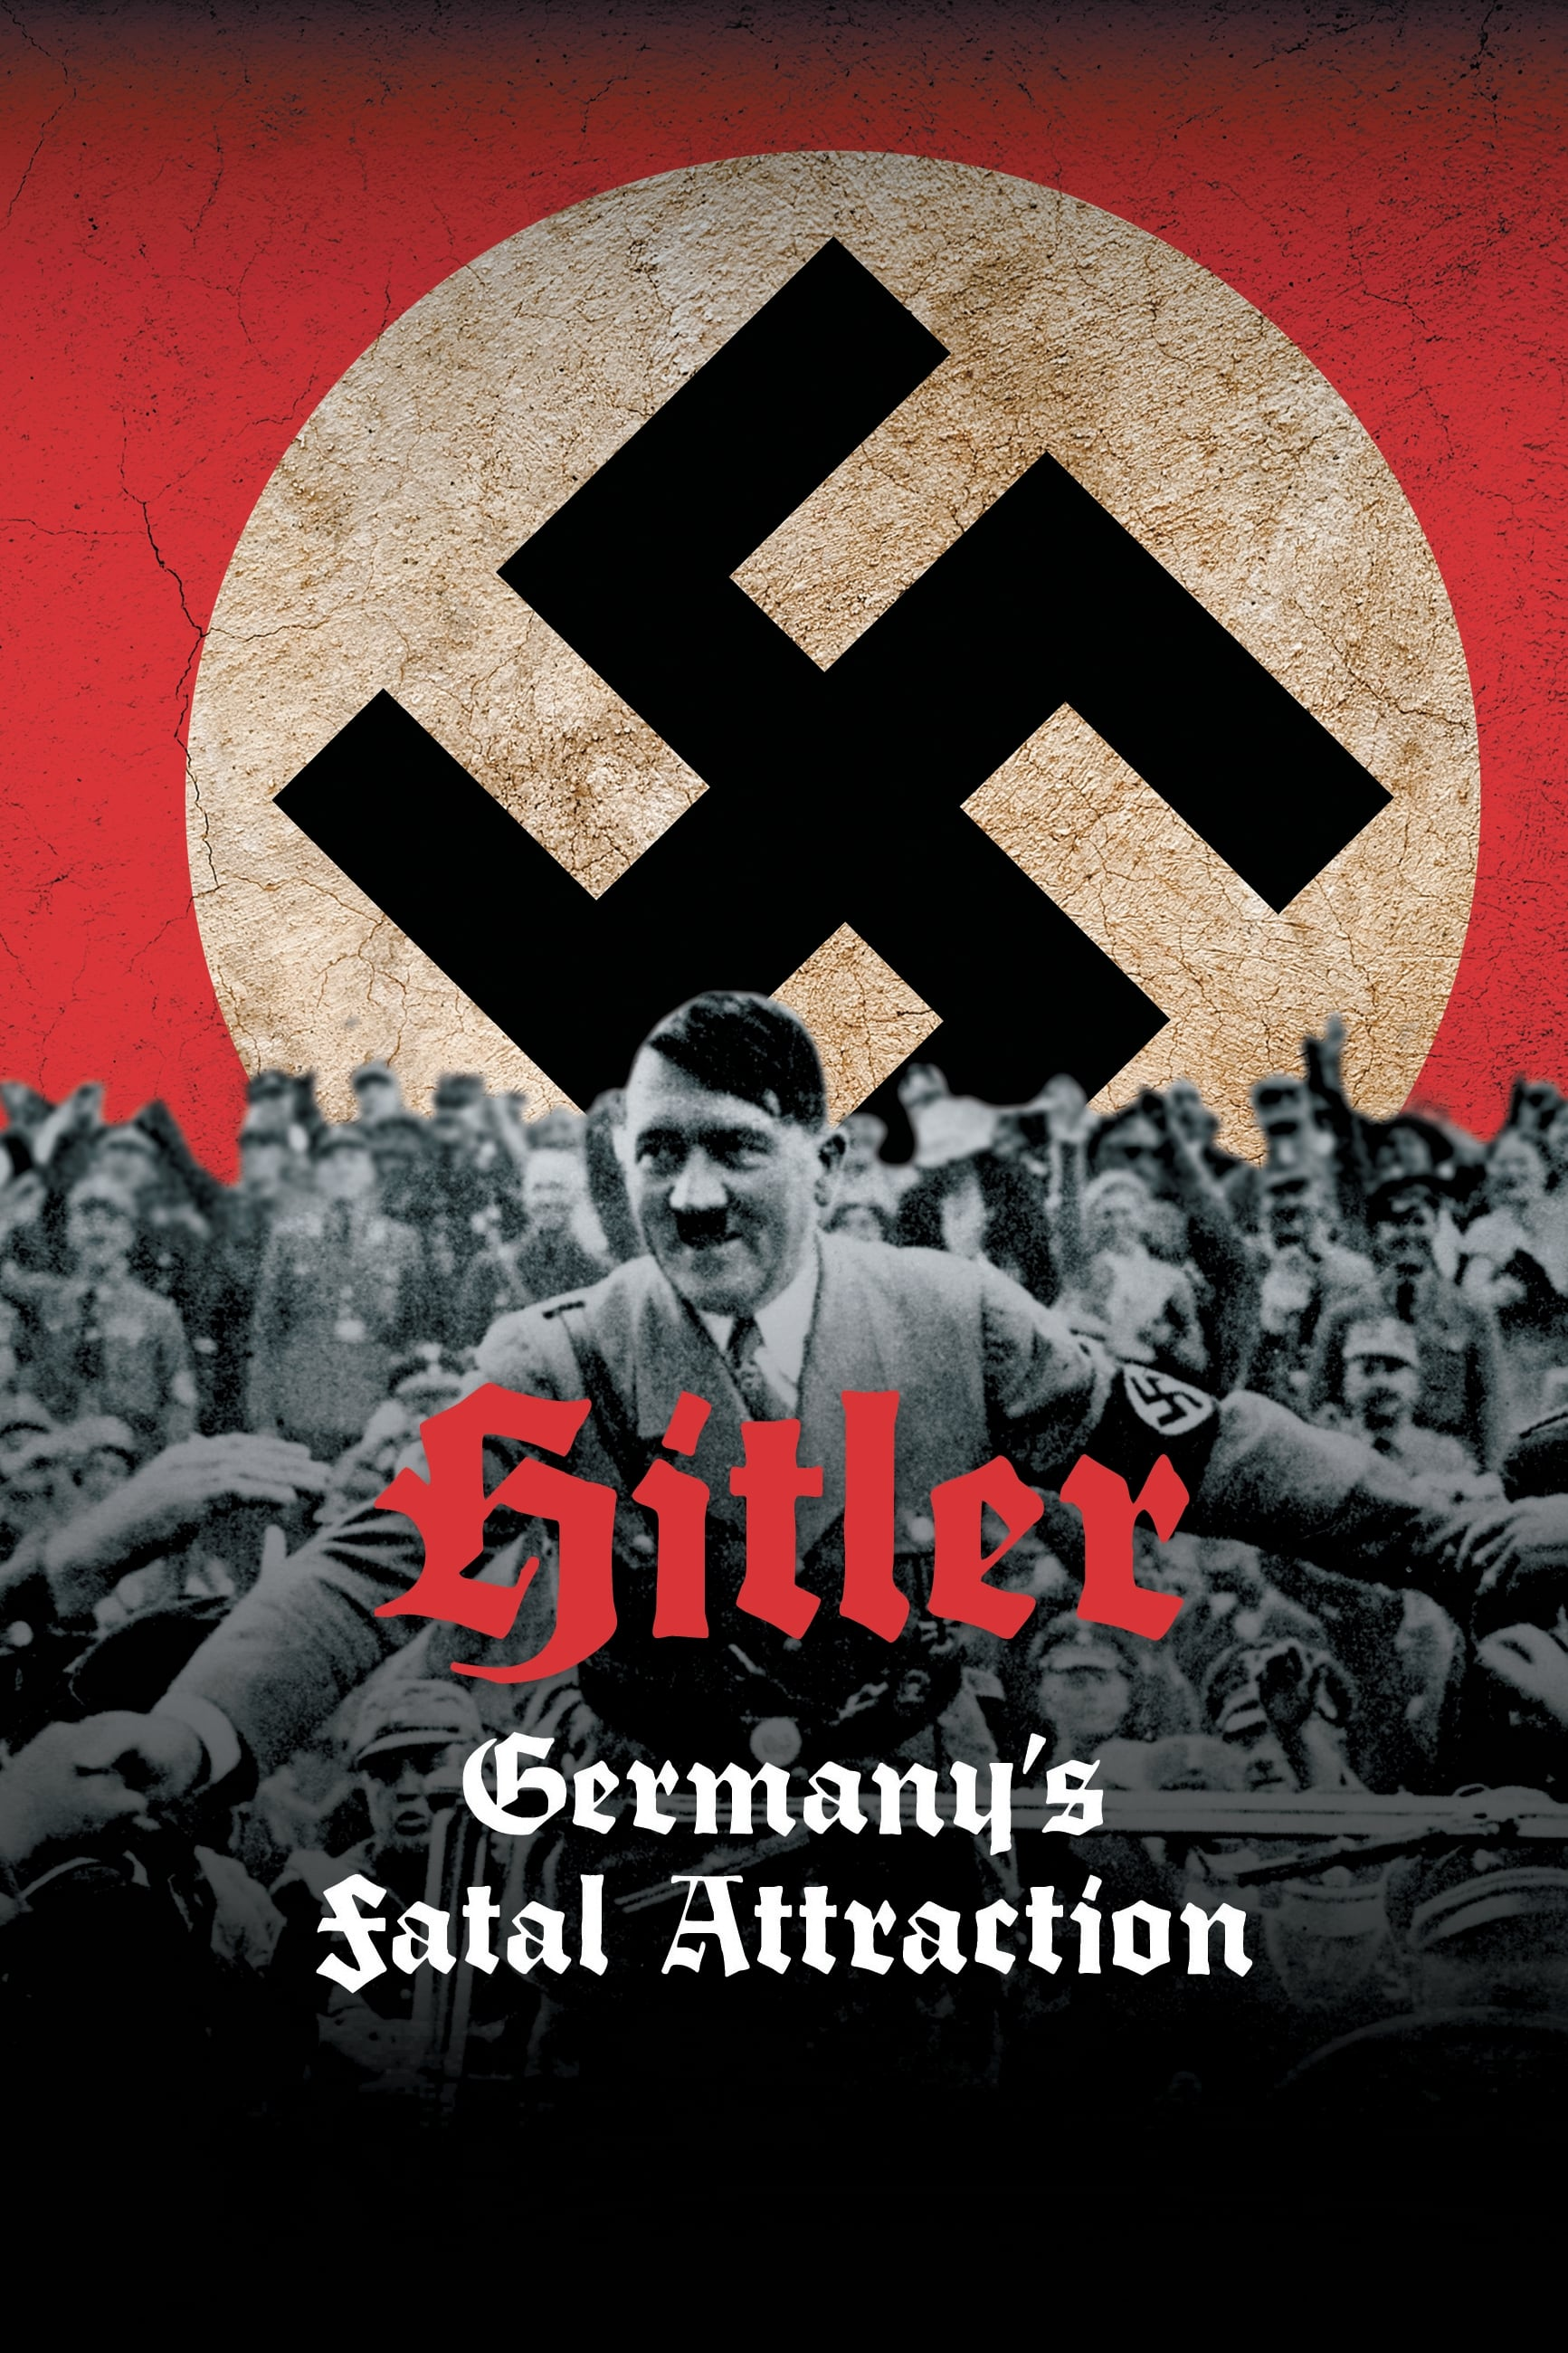 a biography and life work of adolf hitler a german war dictator Watch video  adolf hitler (april 20, 1889 to april 30, 1945) was chancellor of germany from 1933 to 1945, serving as dictator and leader of the nazi party, or national socialist german workers party, for the bulk of his time in power.